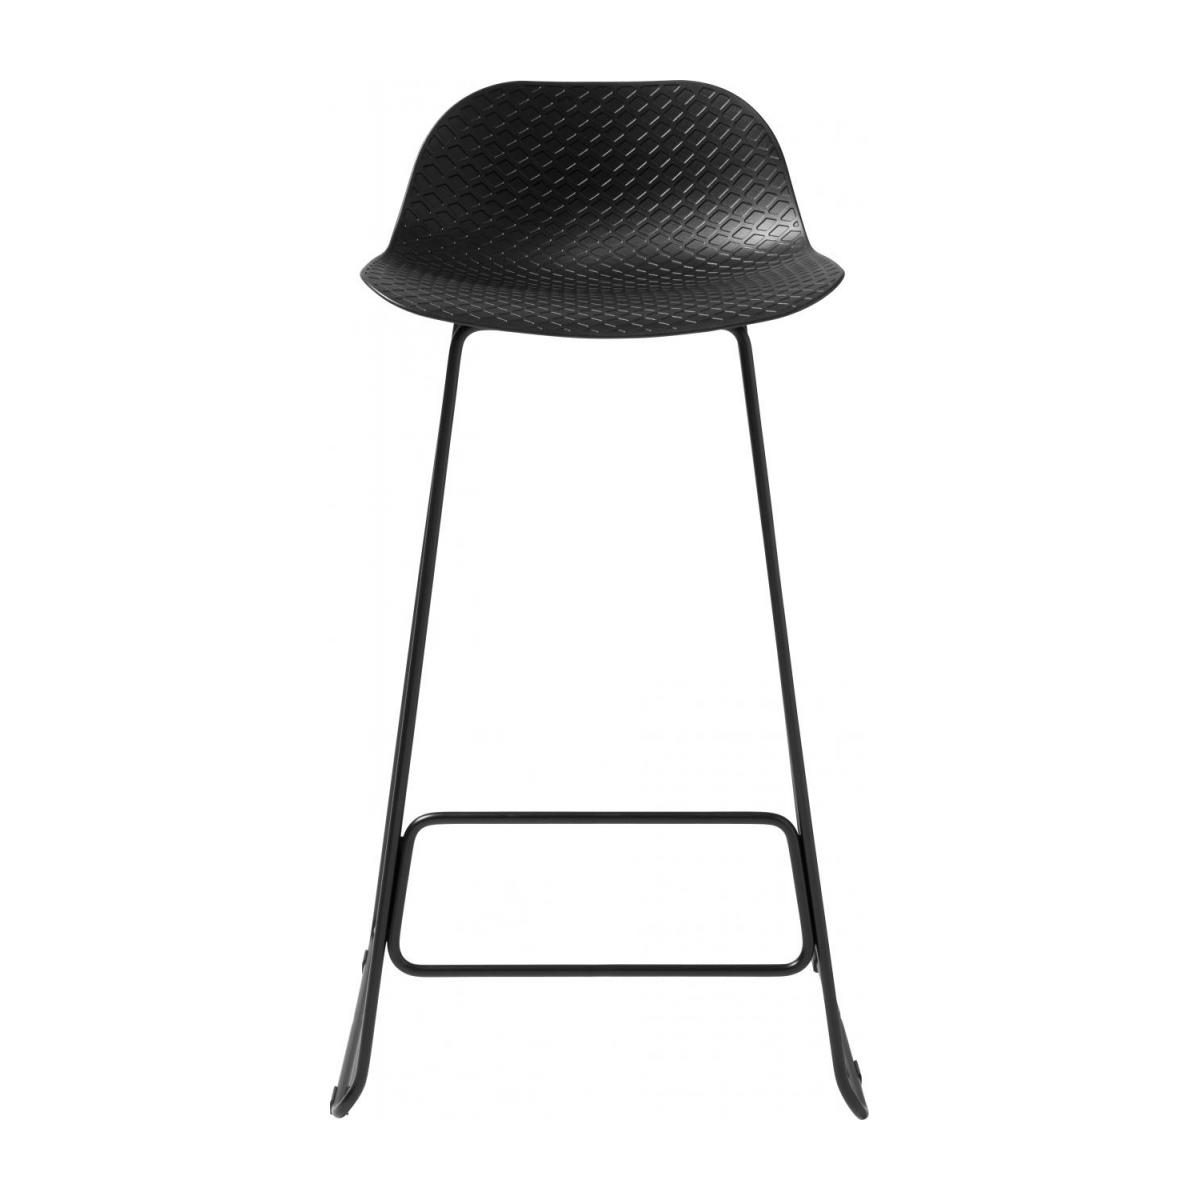 Black high stool in polypropylene and lacquered steel legs n°2